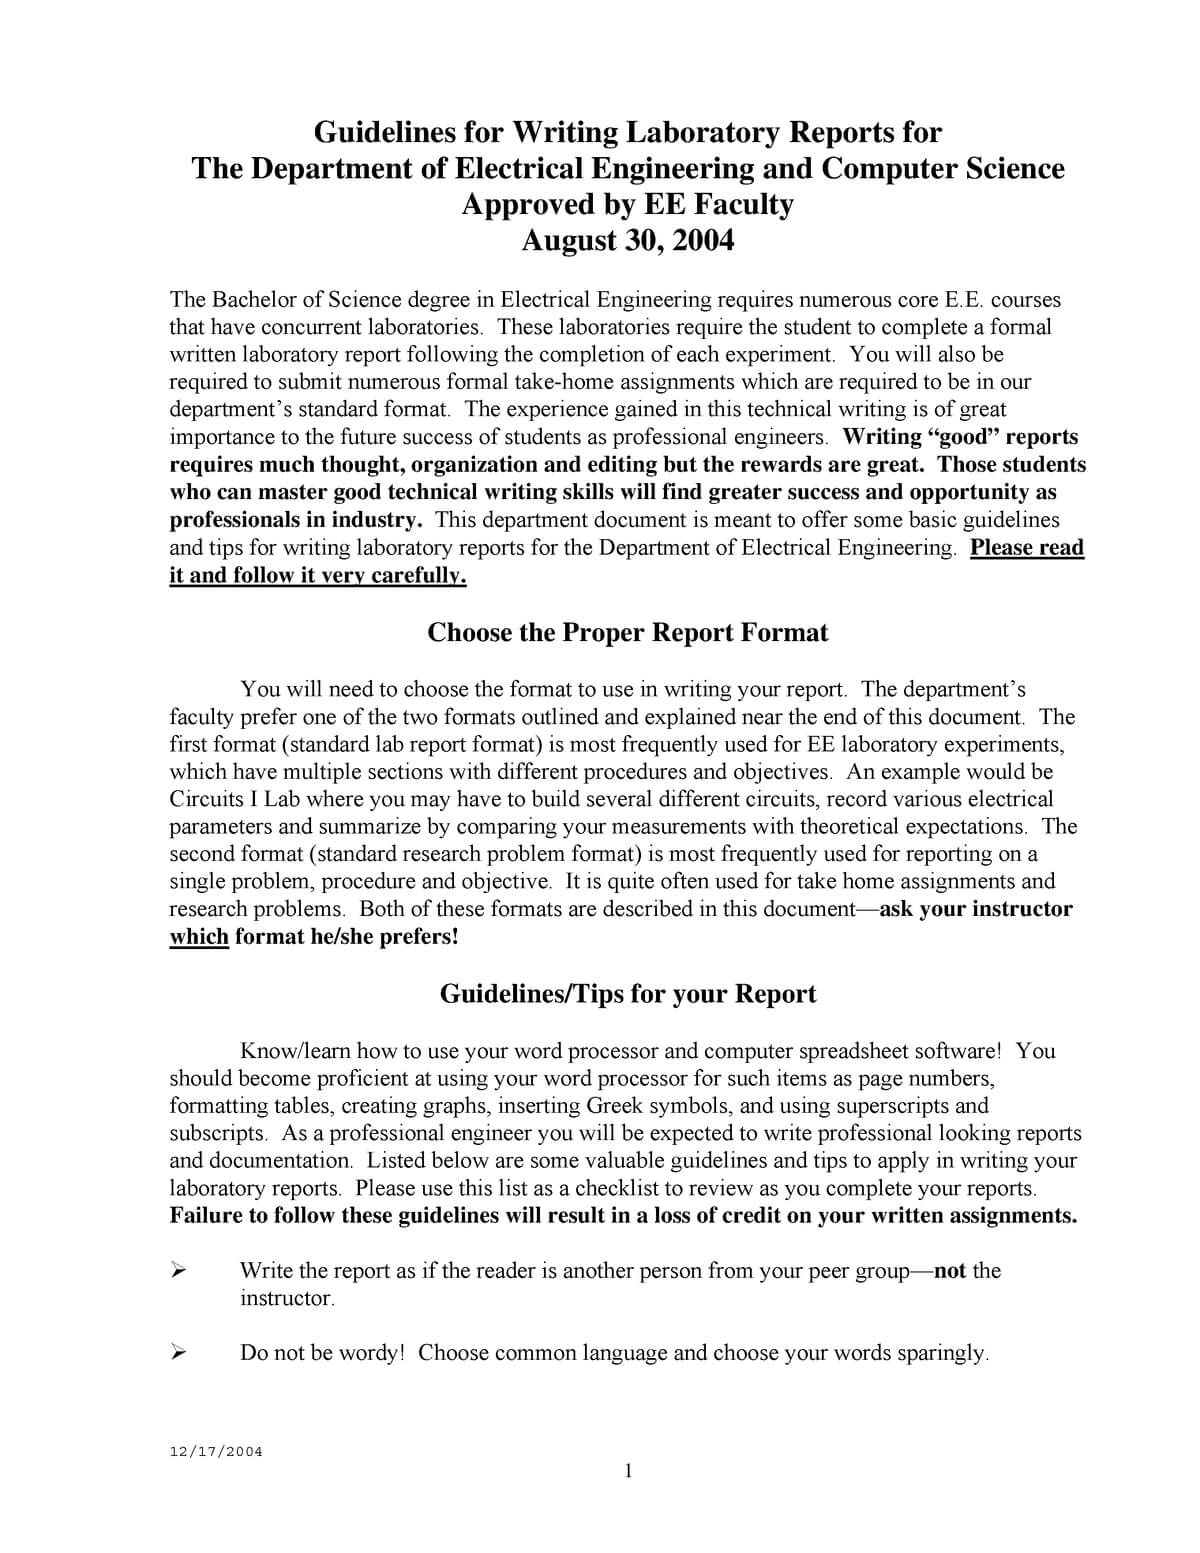 Lab Report Format - Ecte290 - Uow - Studocu Throughout Engineering Lab Report Template